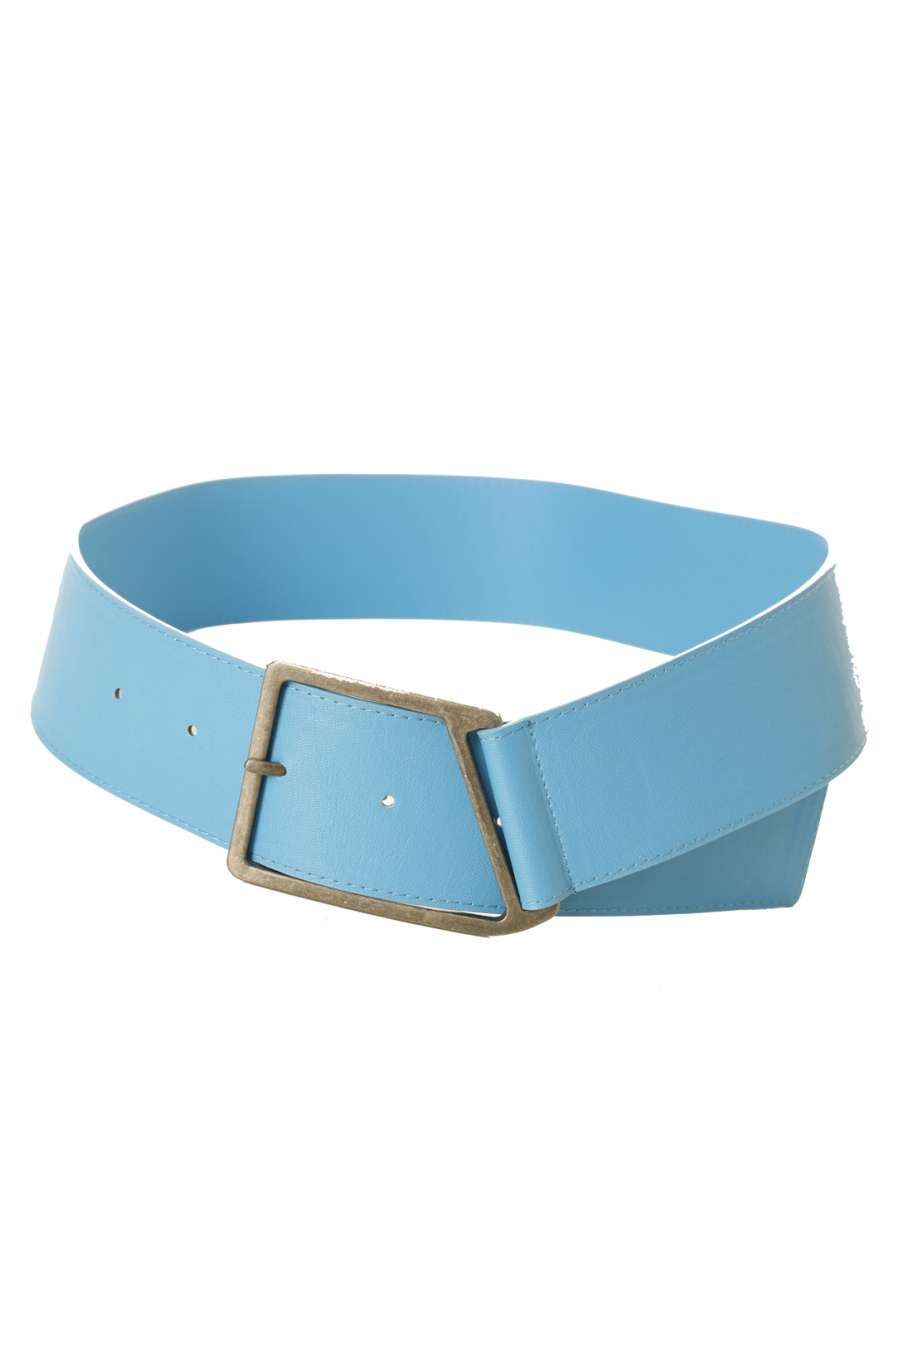 Blue belt with trapeze buckle. SG-0468